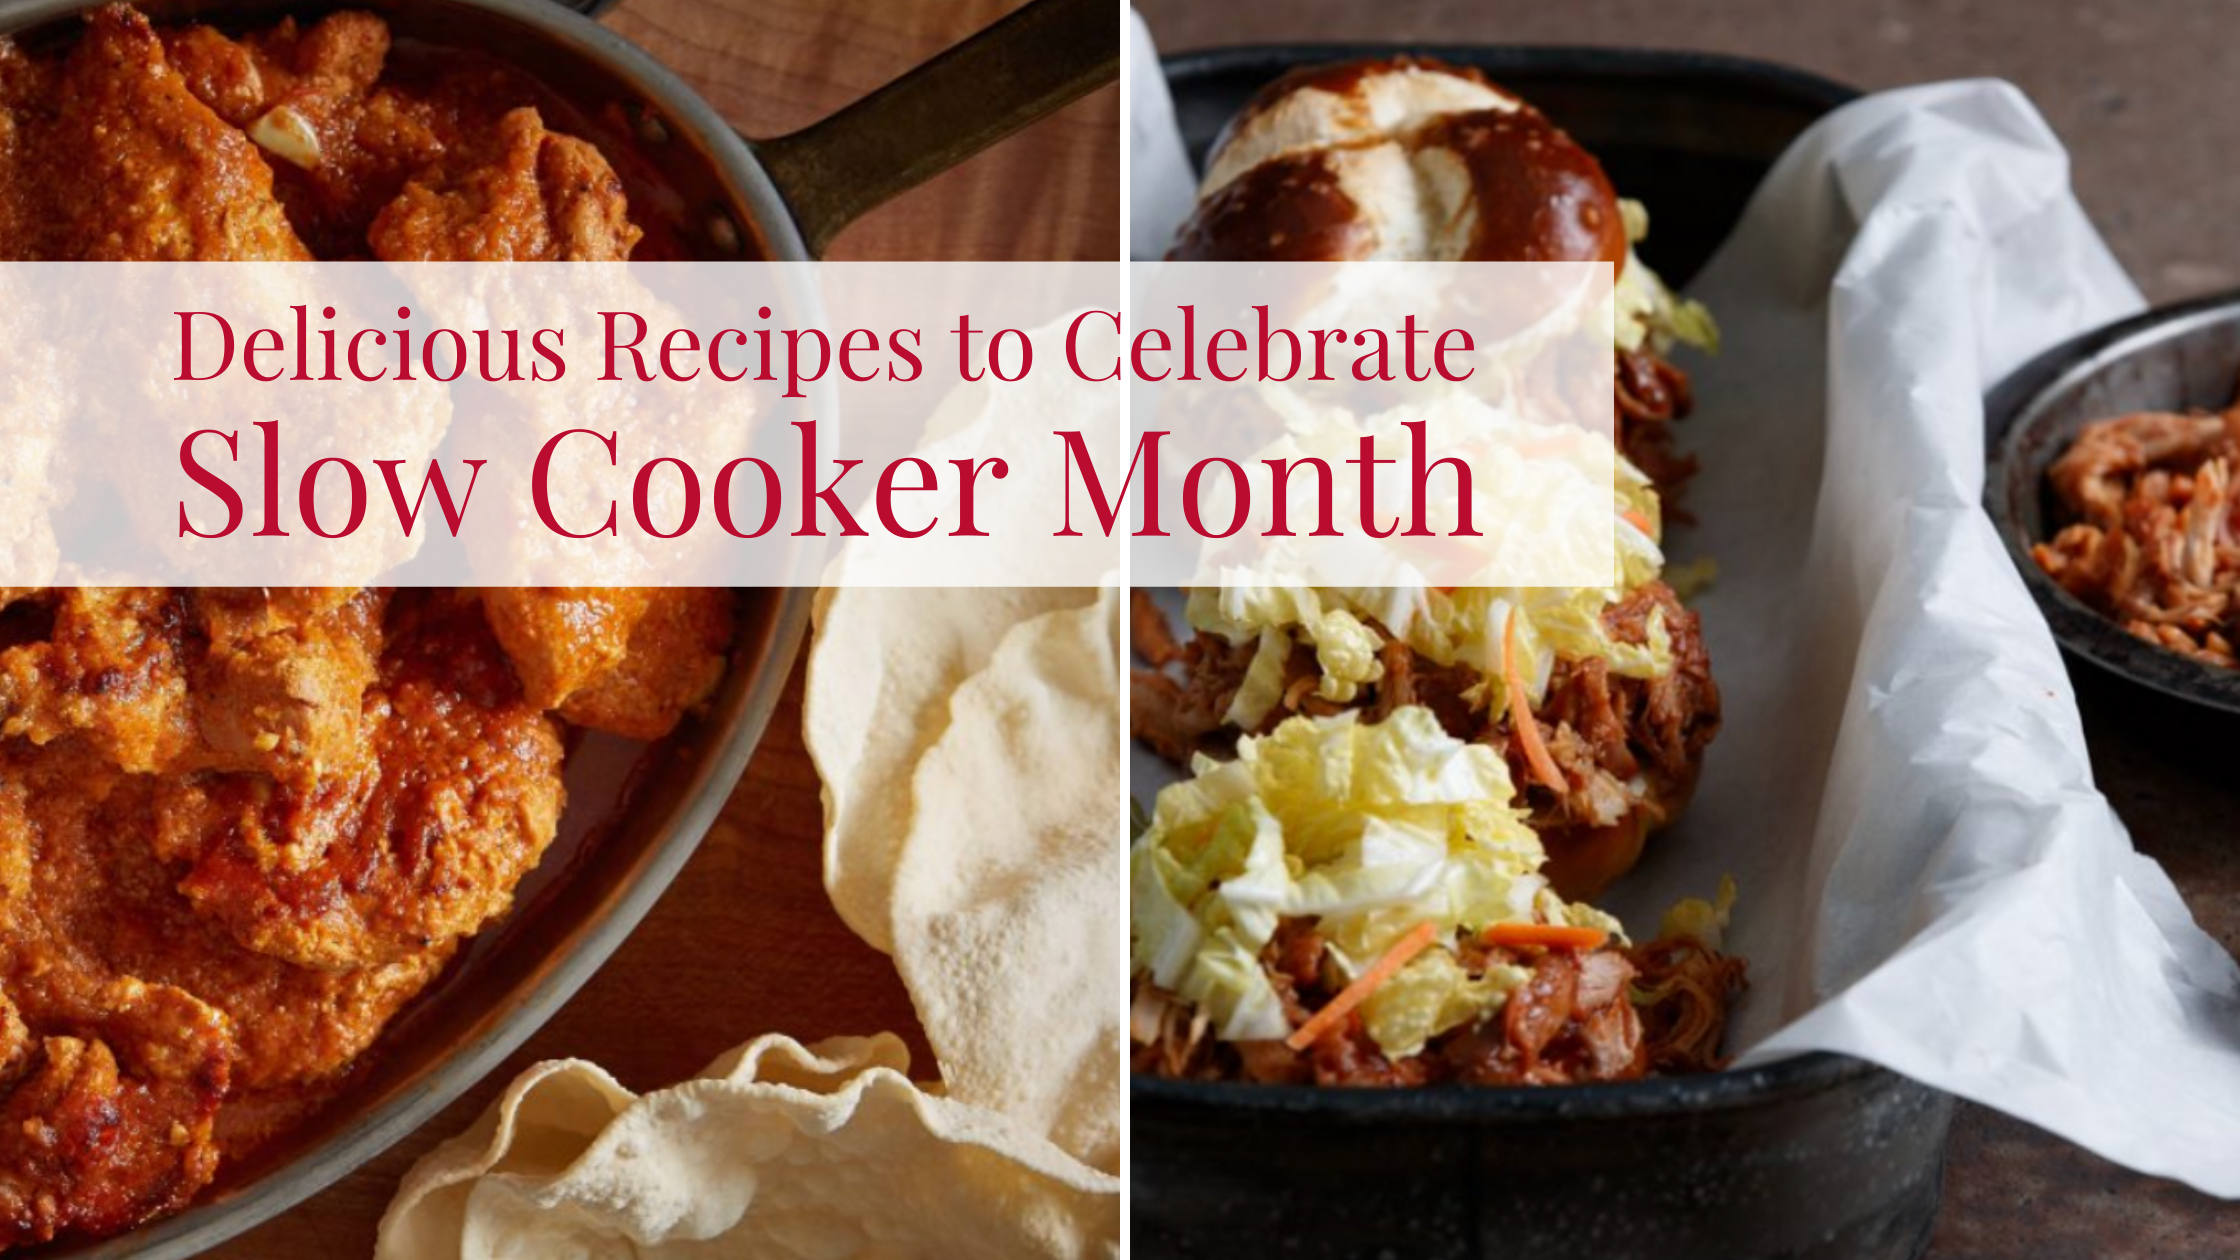 Chicken Recipes for Slow Cooker